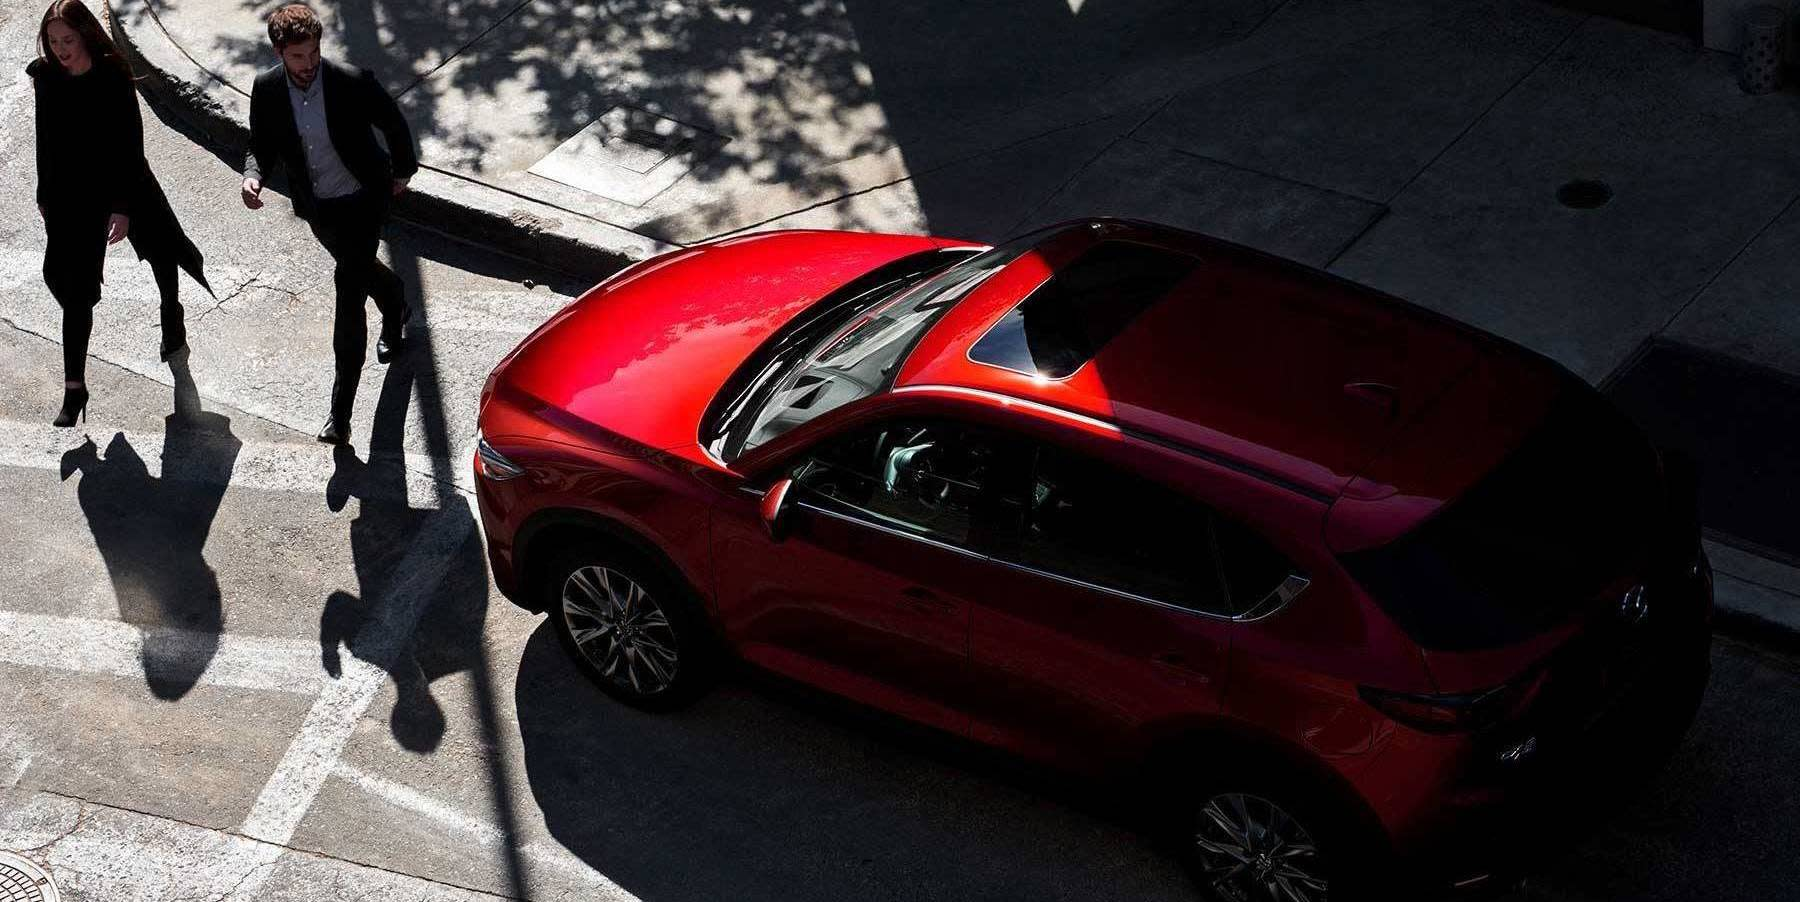 2019 Mazda CX-5 vs 2019 Chevrolet Equinox near Sacramento, CA